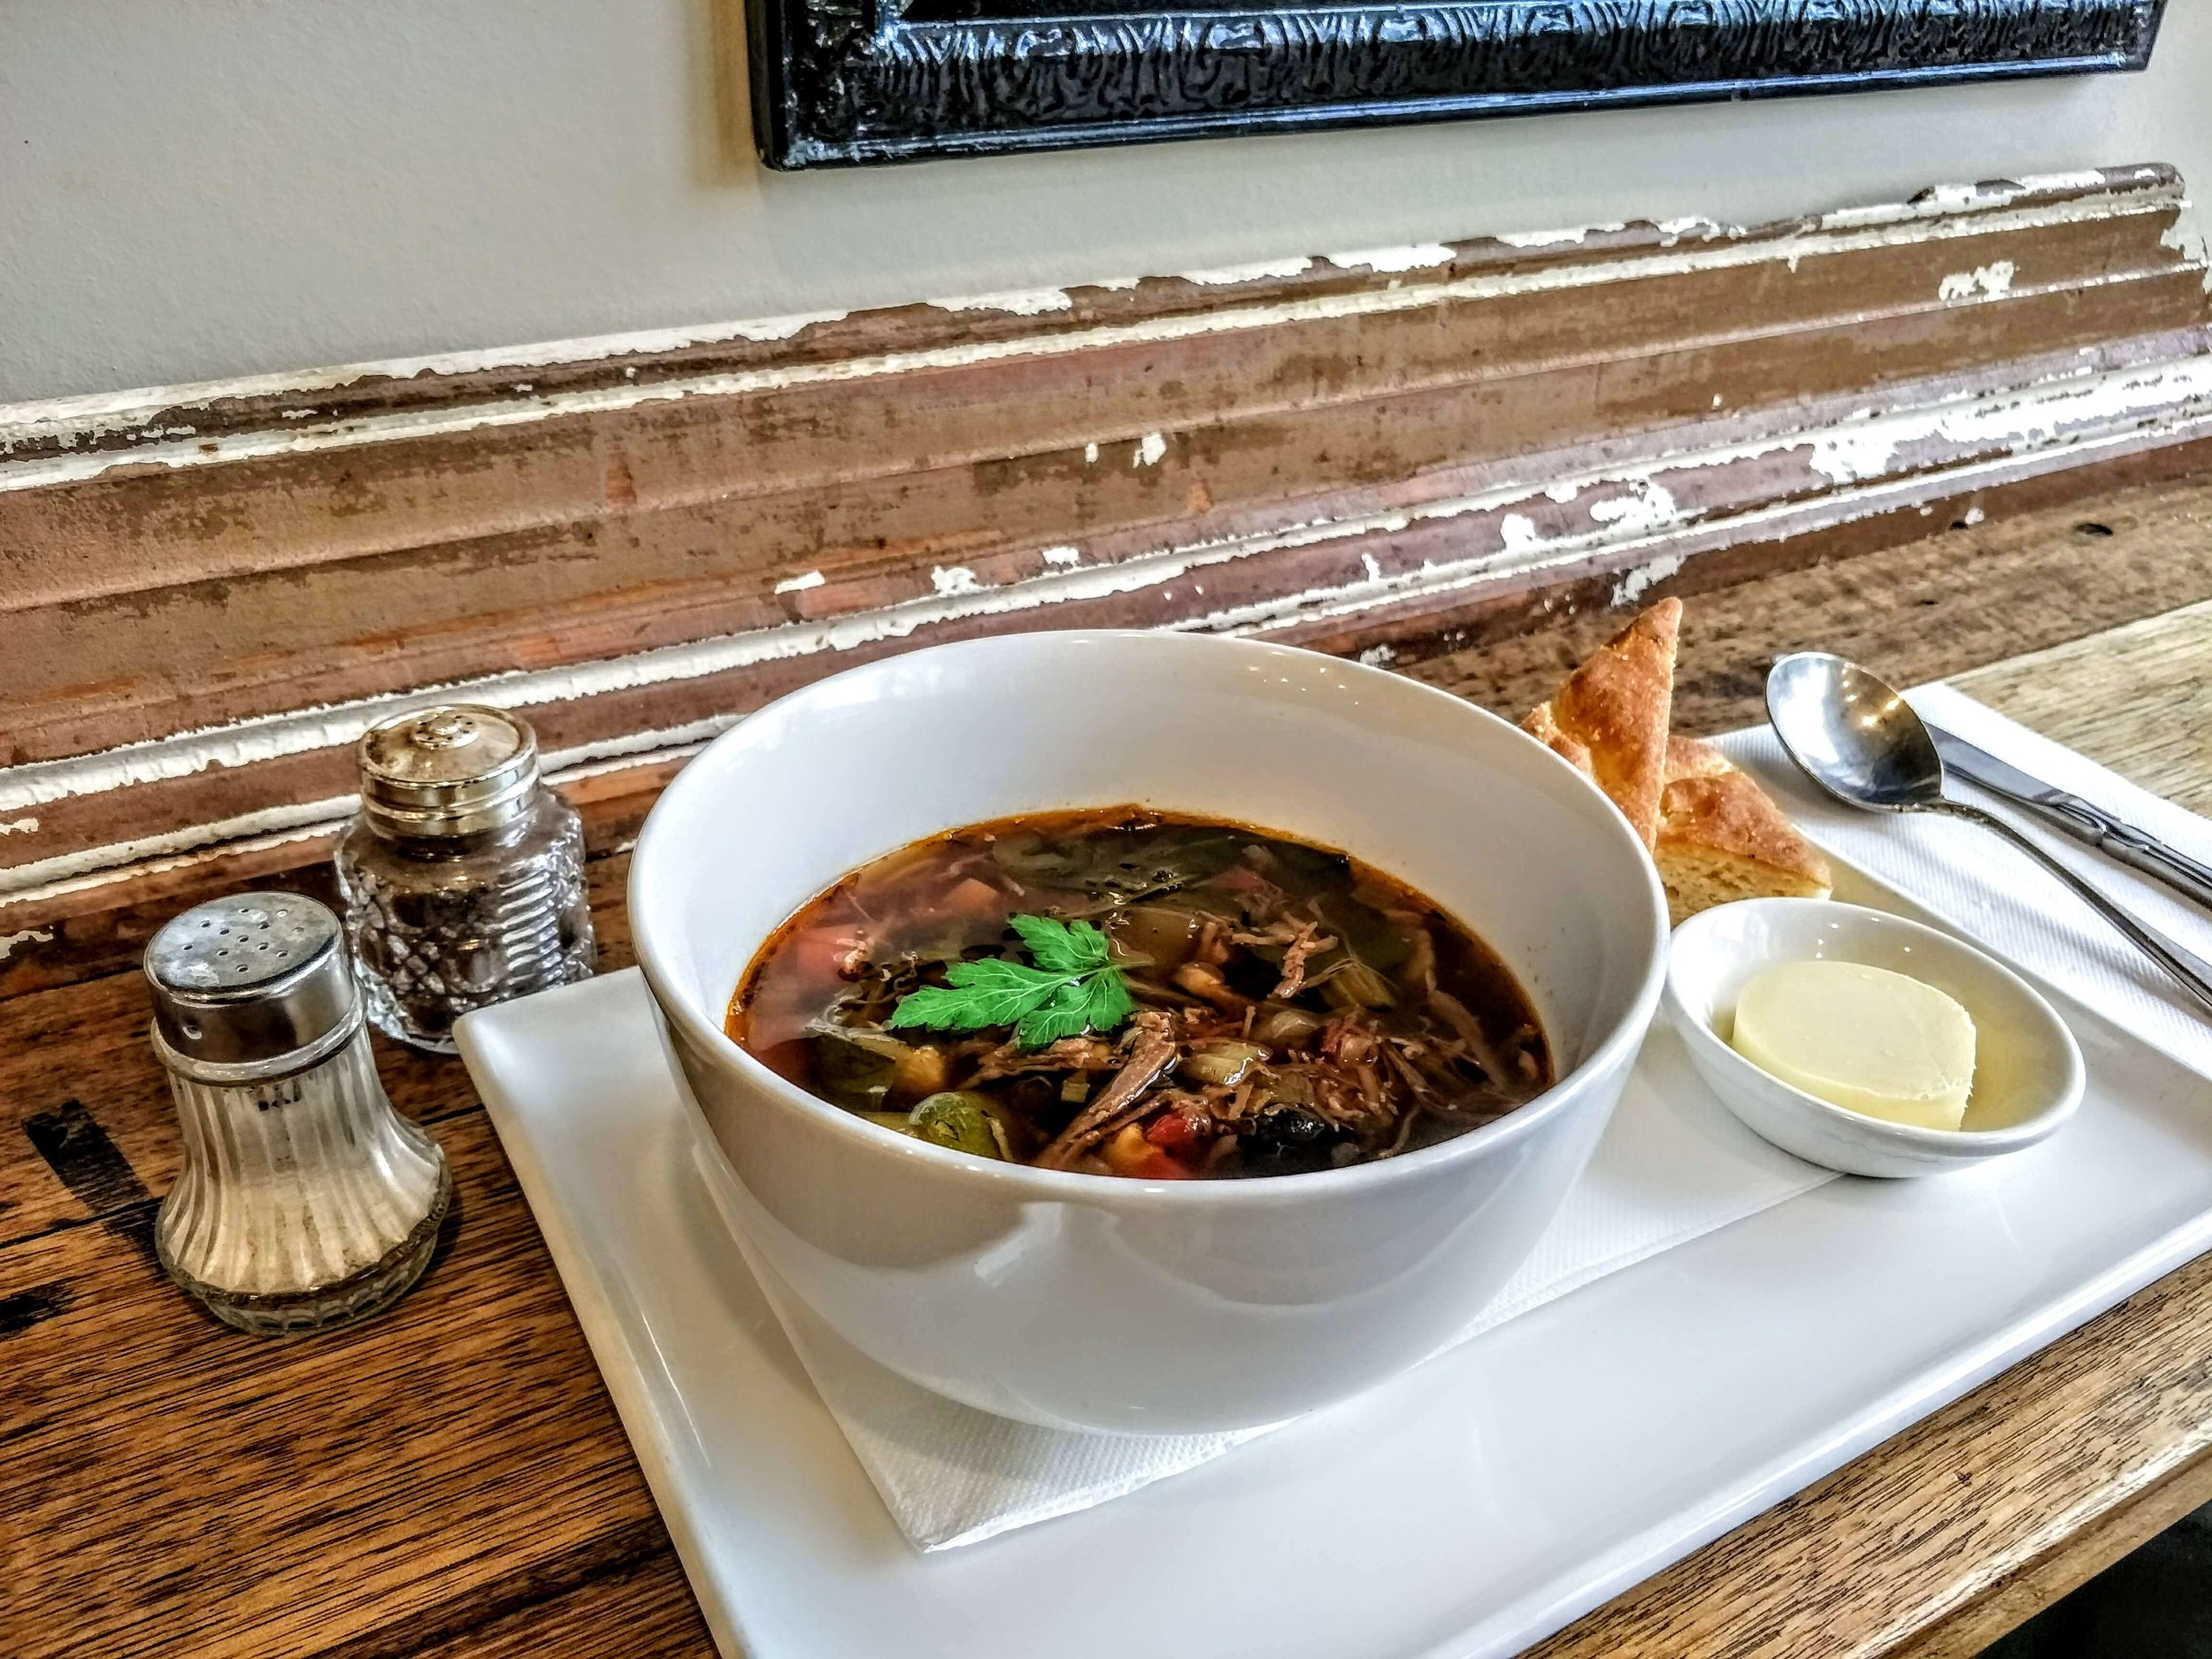 Samuel Pepys Cafe Soupalicious Hearty Beef and Winter Vegi Soup-2.jpg